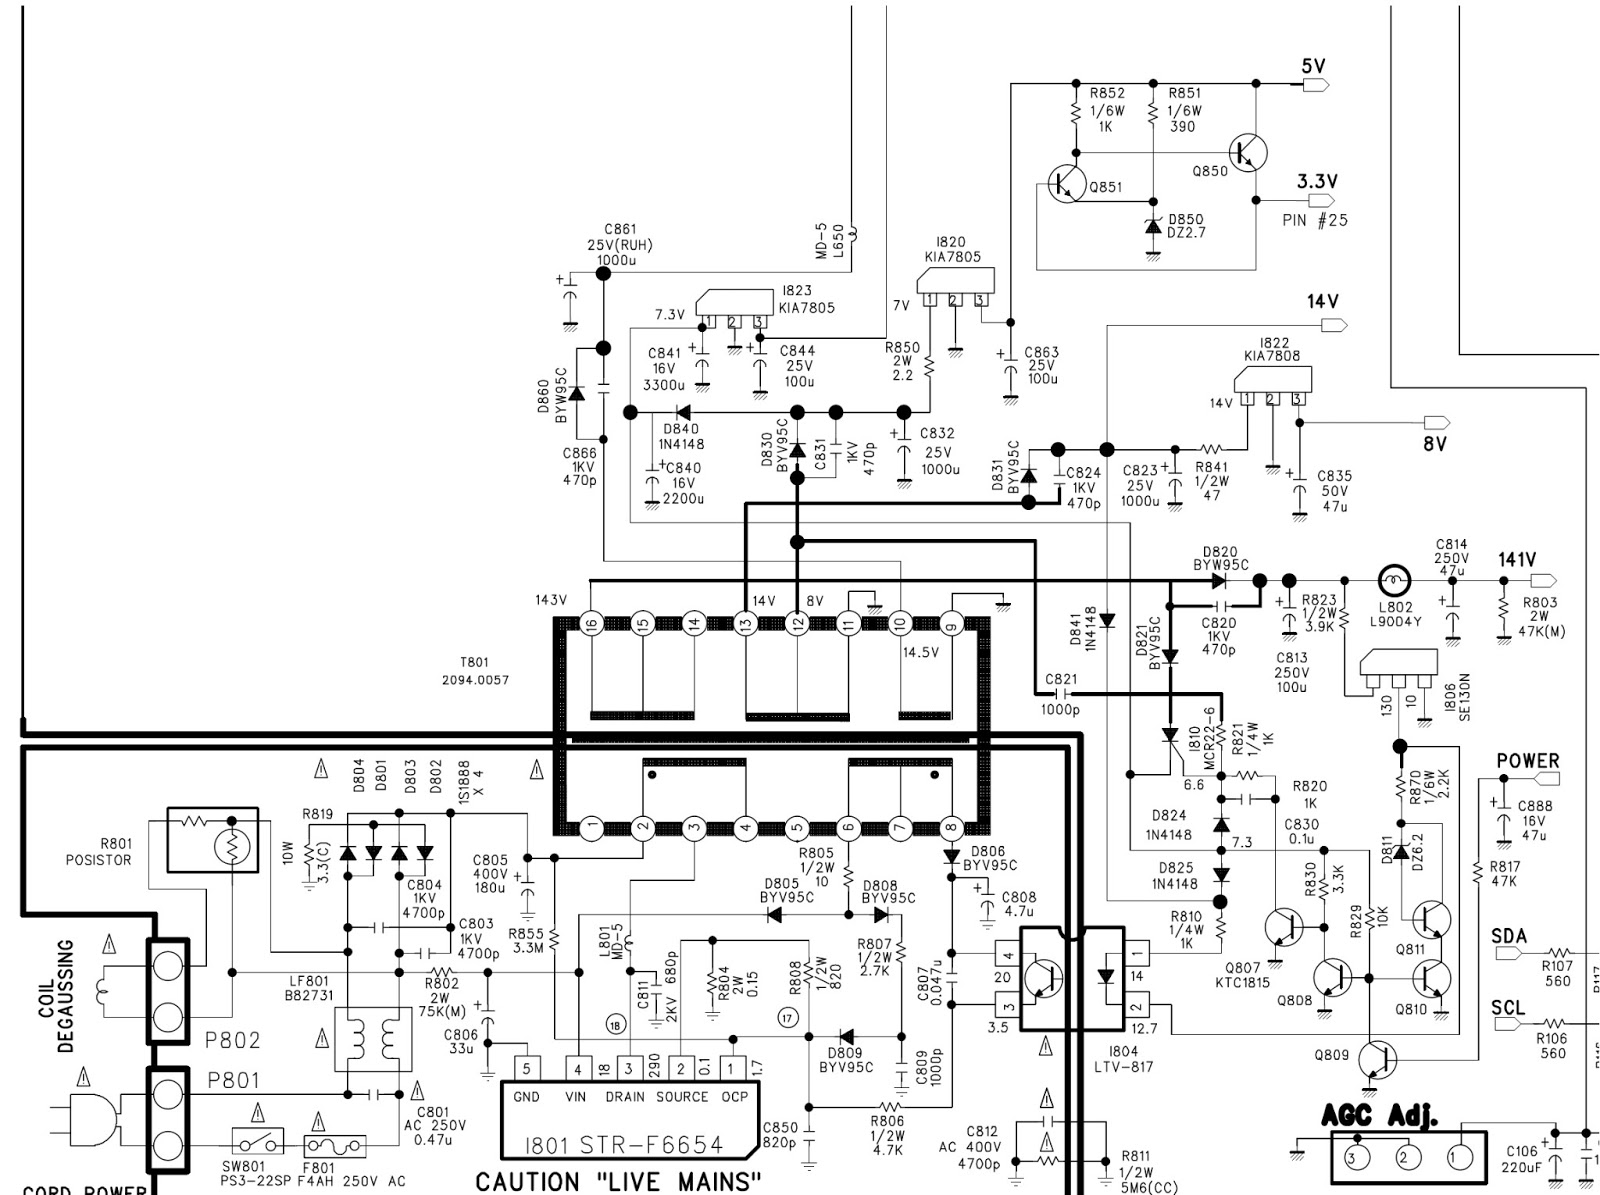 Str f6654 based smps power supply schematic diagram daewoo dsc